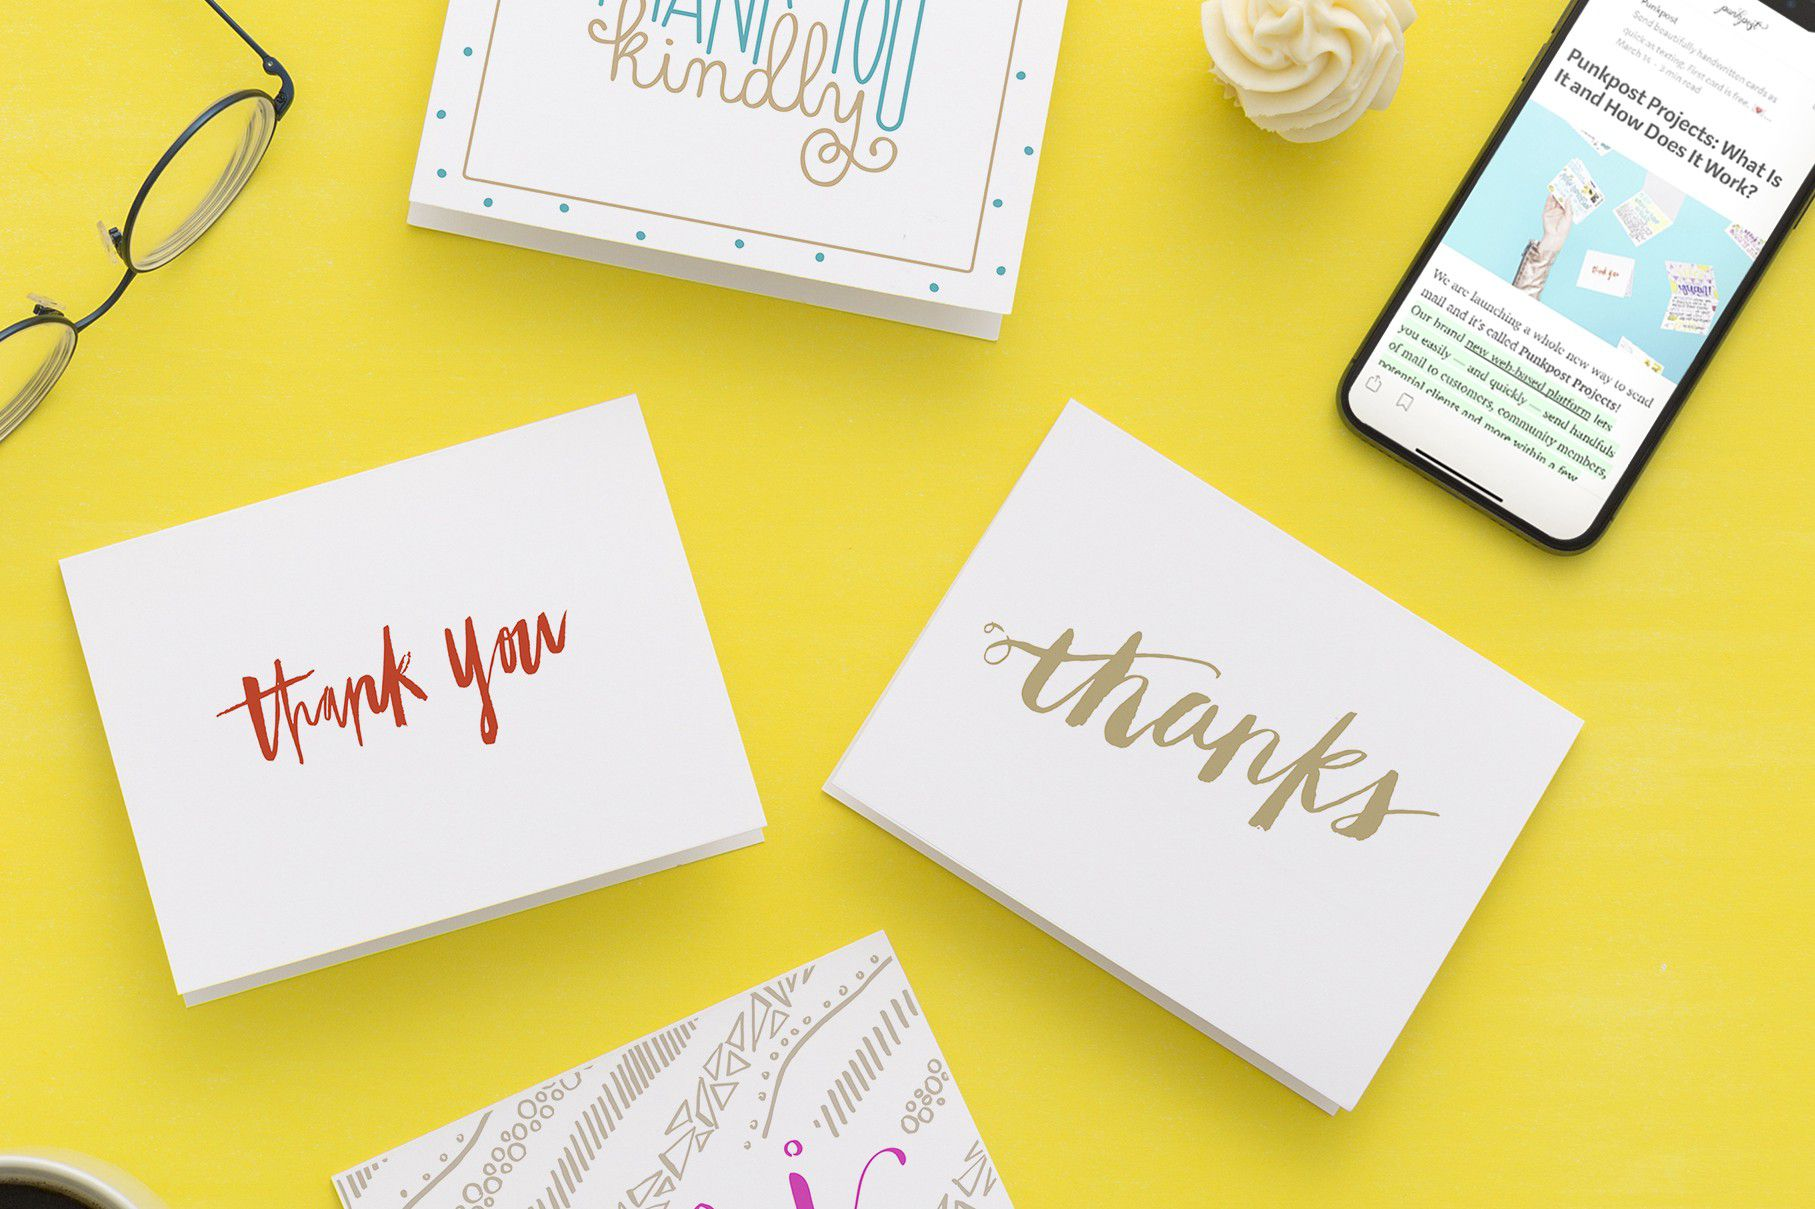 000 Fascinating Handwritten Thank You Note After Interview Template Idea Full